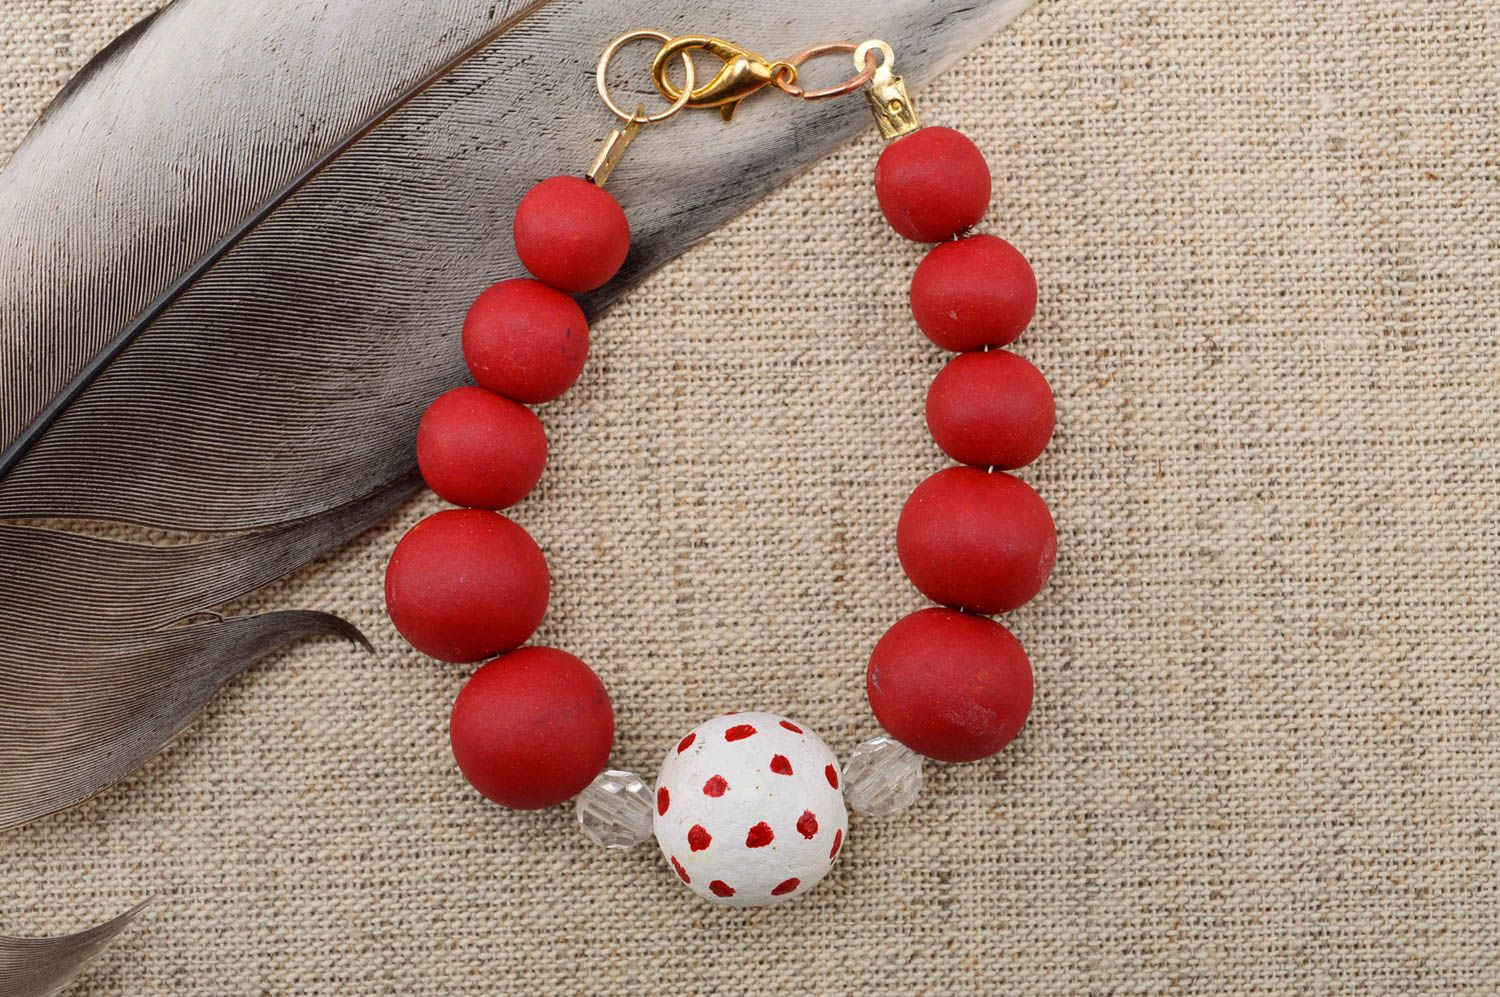 Handmade beautiful bracelet plastic red bracelet stylish wrist accessory photo 1